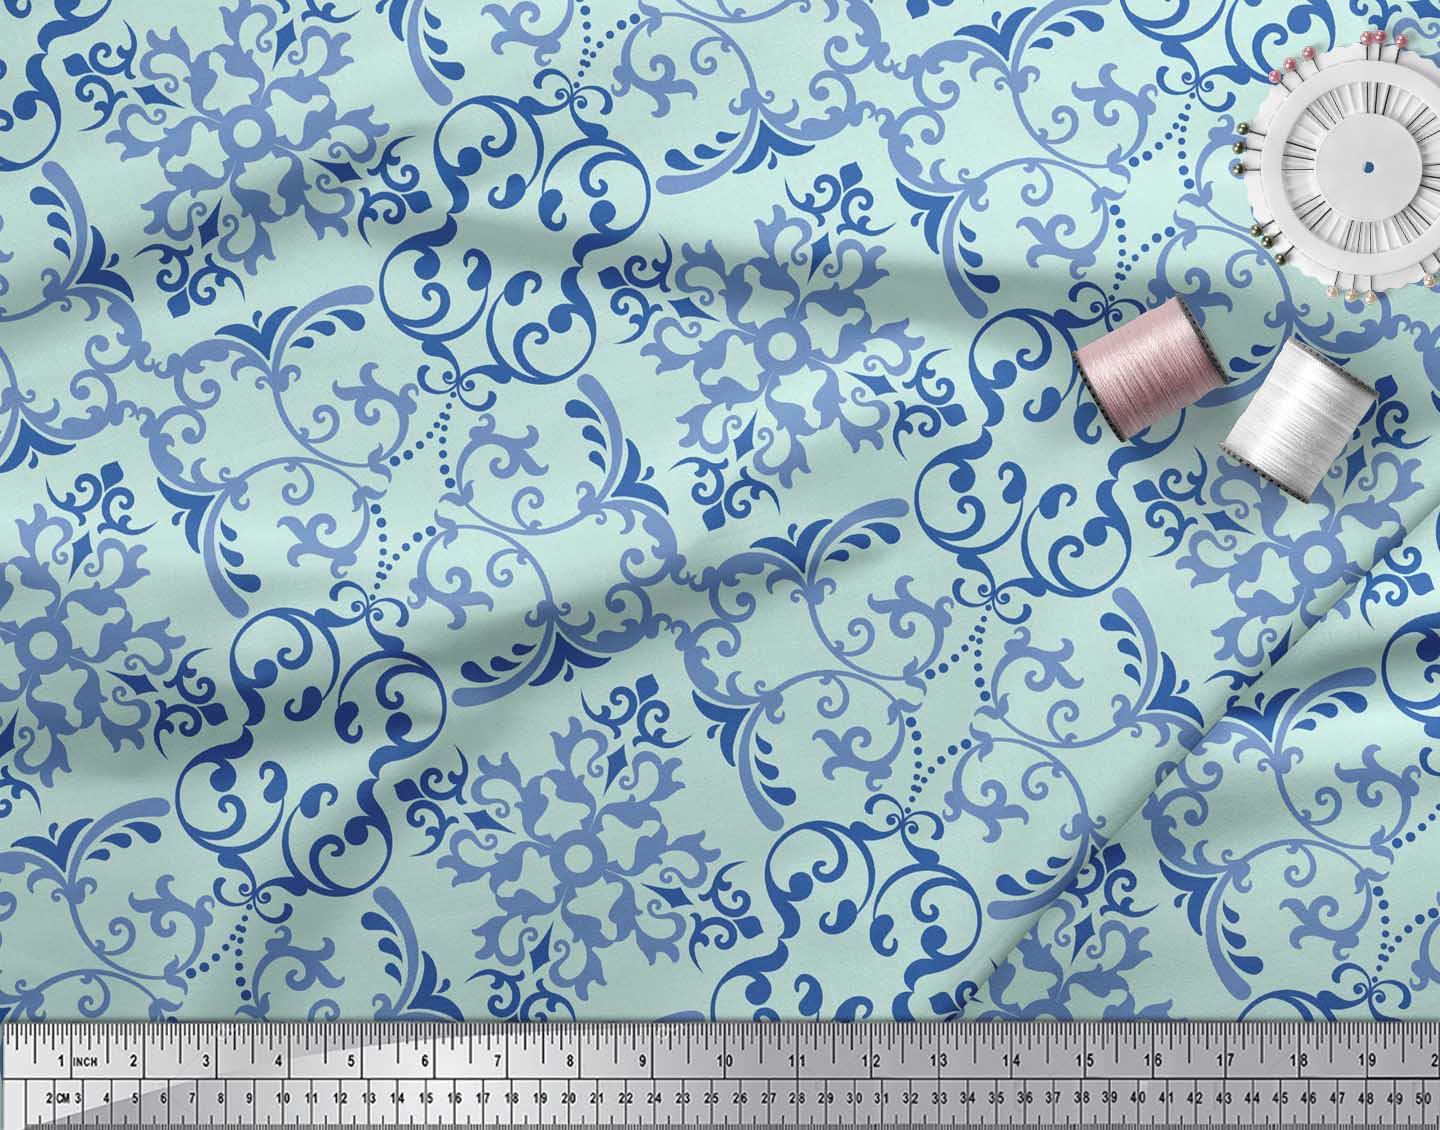 Soimoi-Green-Cotton-Poplin-Fabric-Vector-Design-Damask-Decor-Fabric-FDQ thumbnail 3